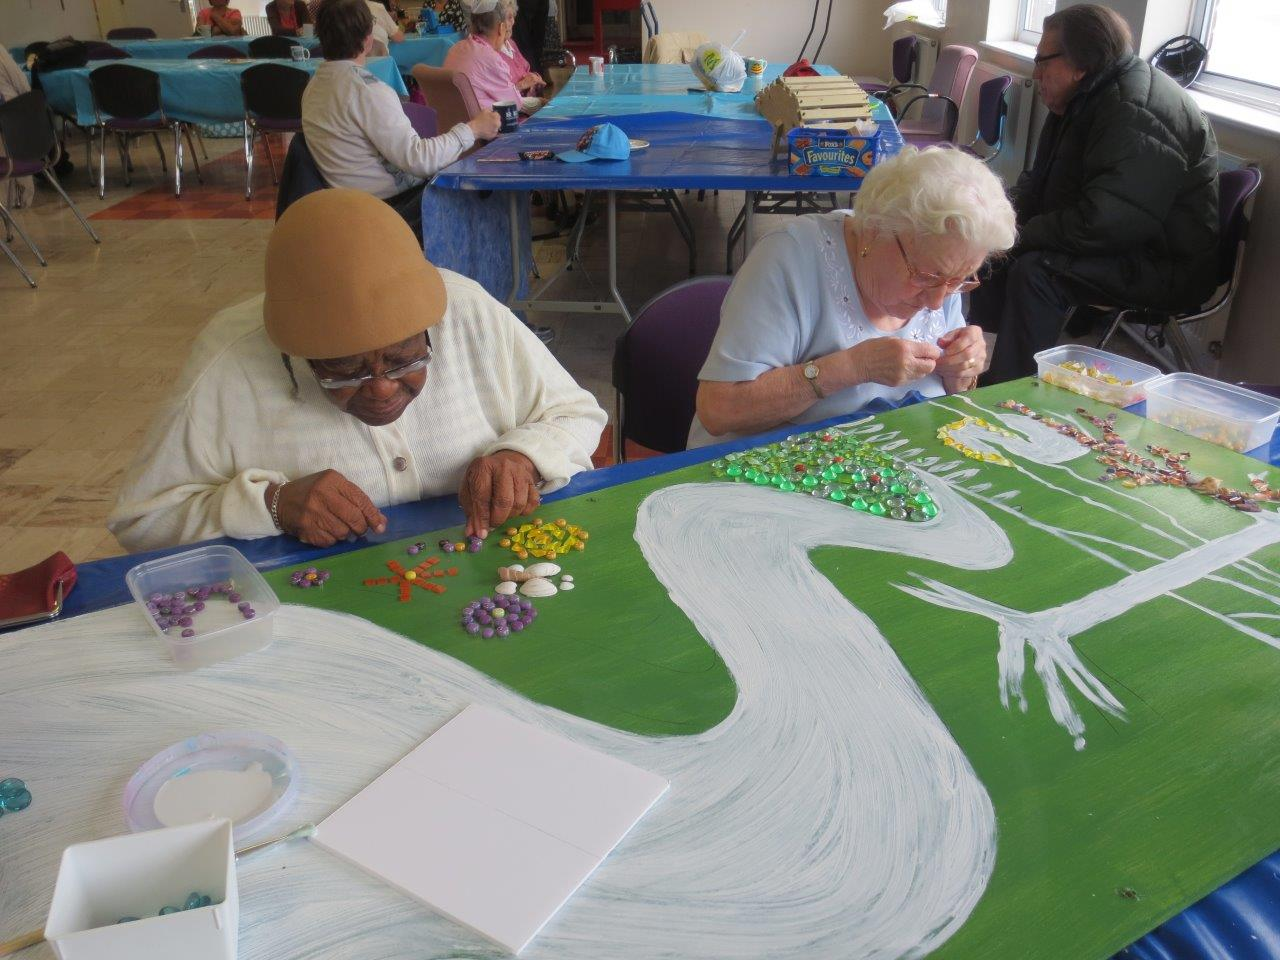 Two members sitting at a table creating the mosaic picture